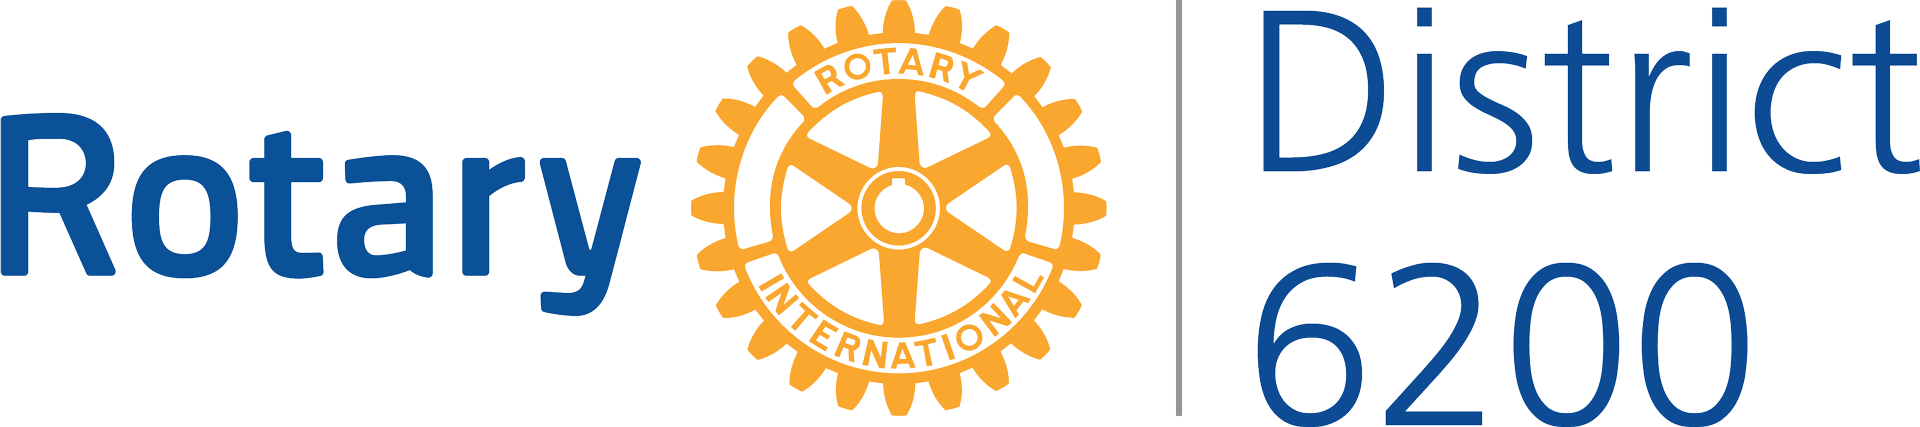 Rotary District 6200 Website